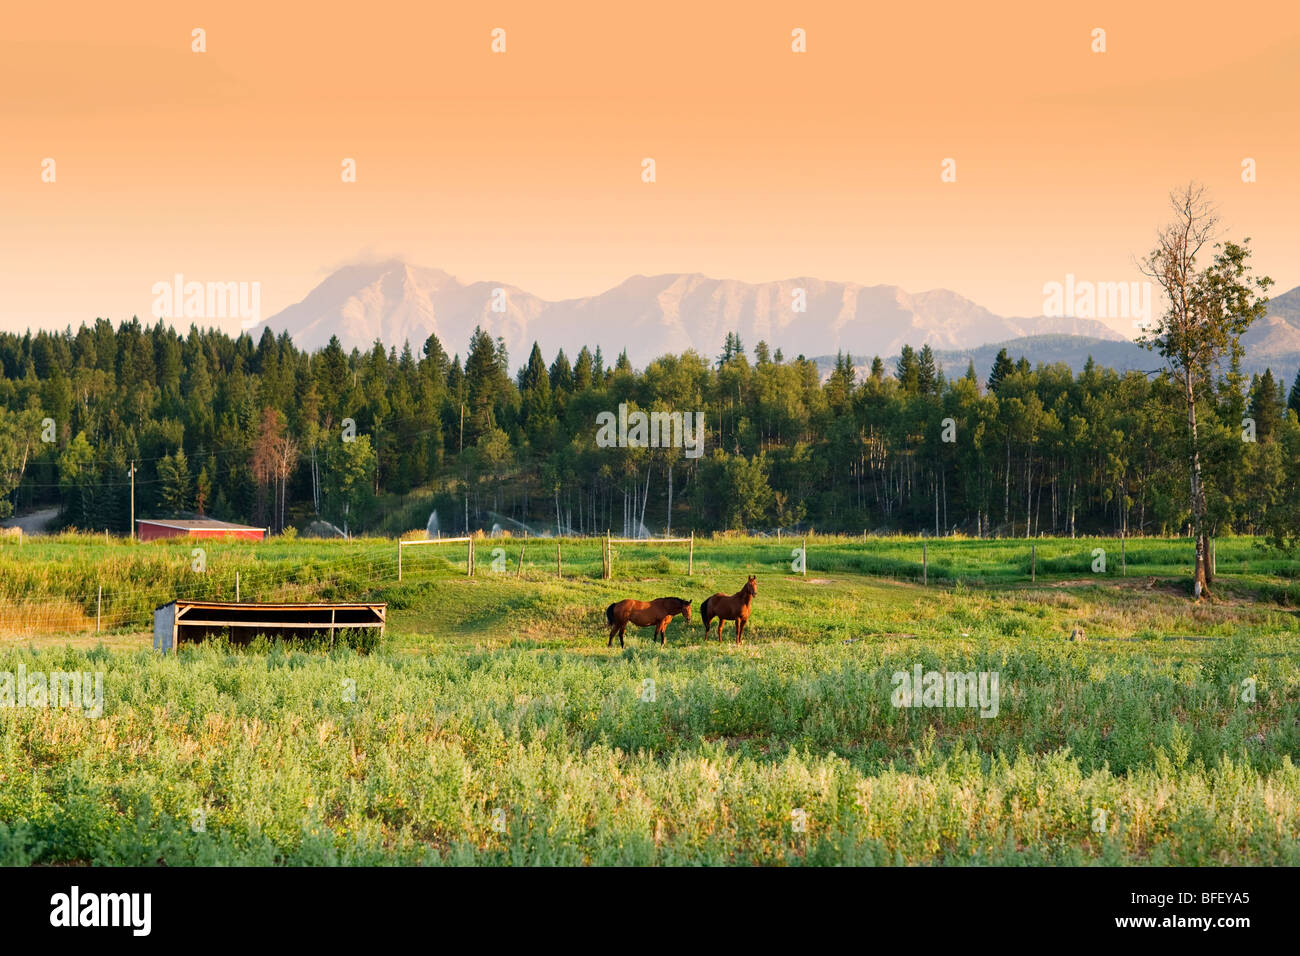 Horses, Jaffery, British Columbia, Canada, sunrise, mountain - Stock Image